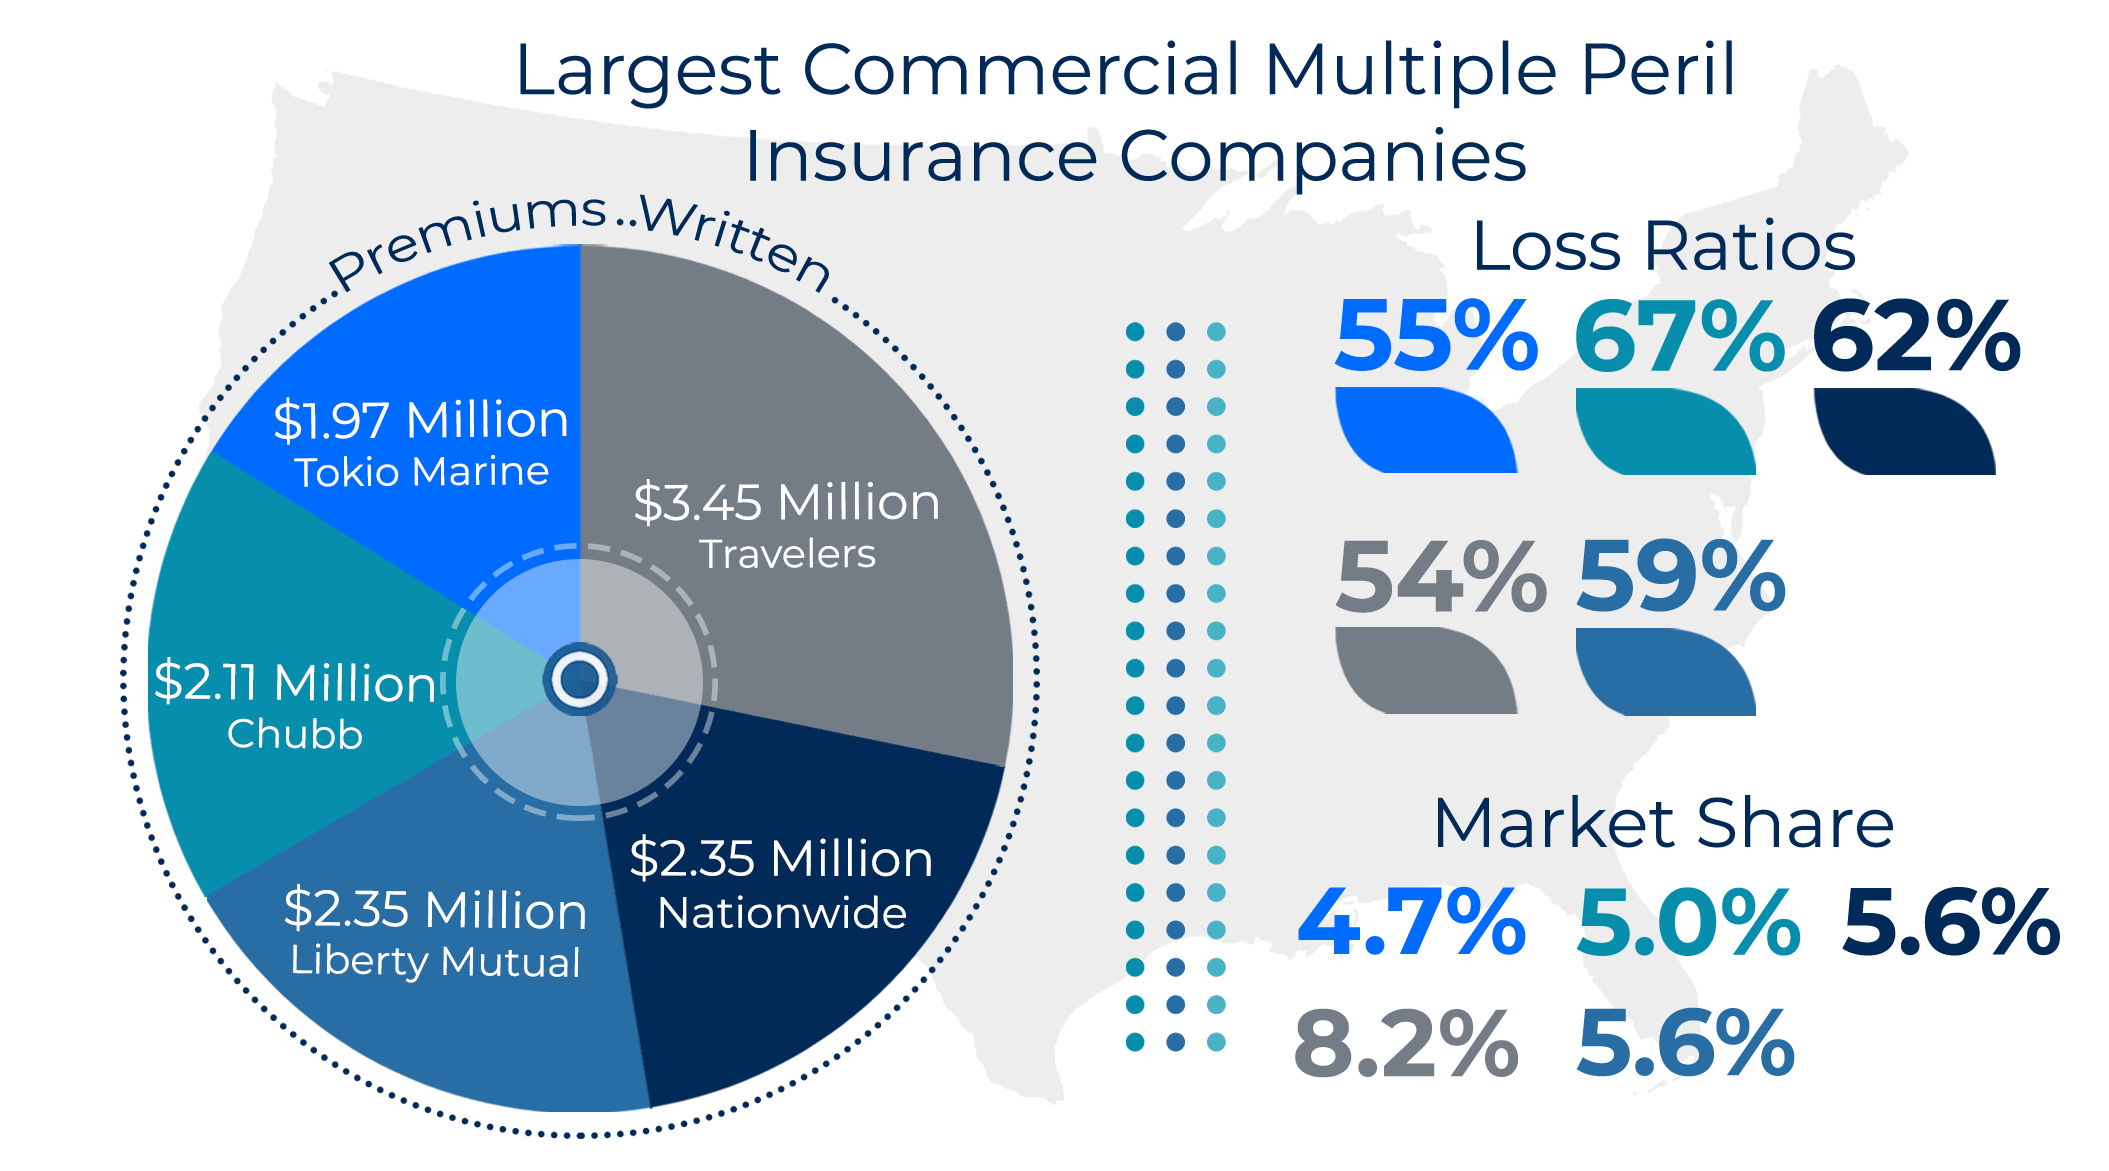 Largest Commercial Multiple Peril Insurance Companies Graphic